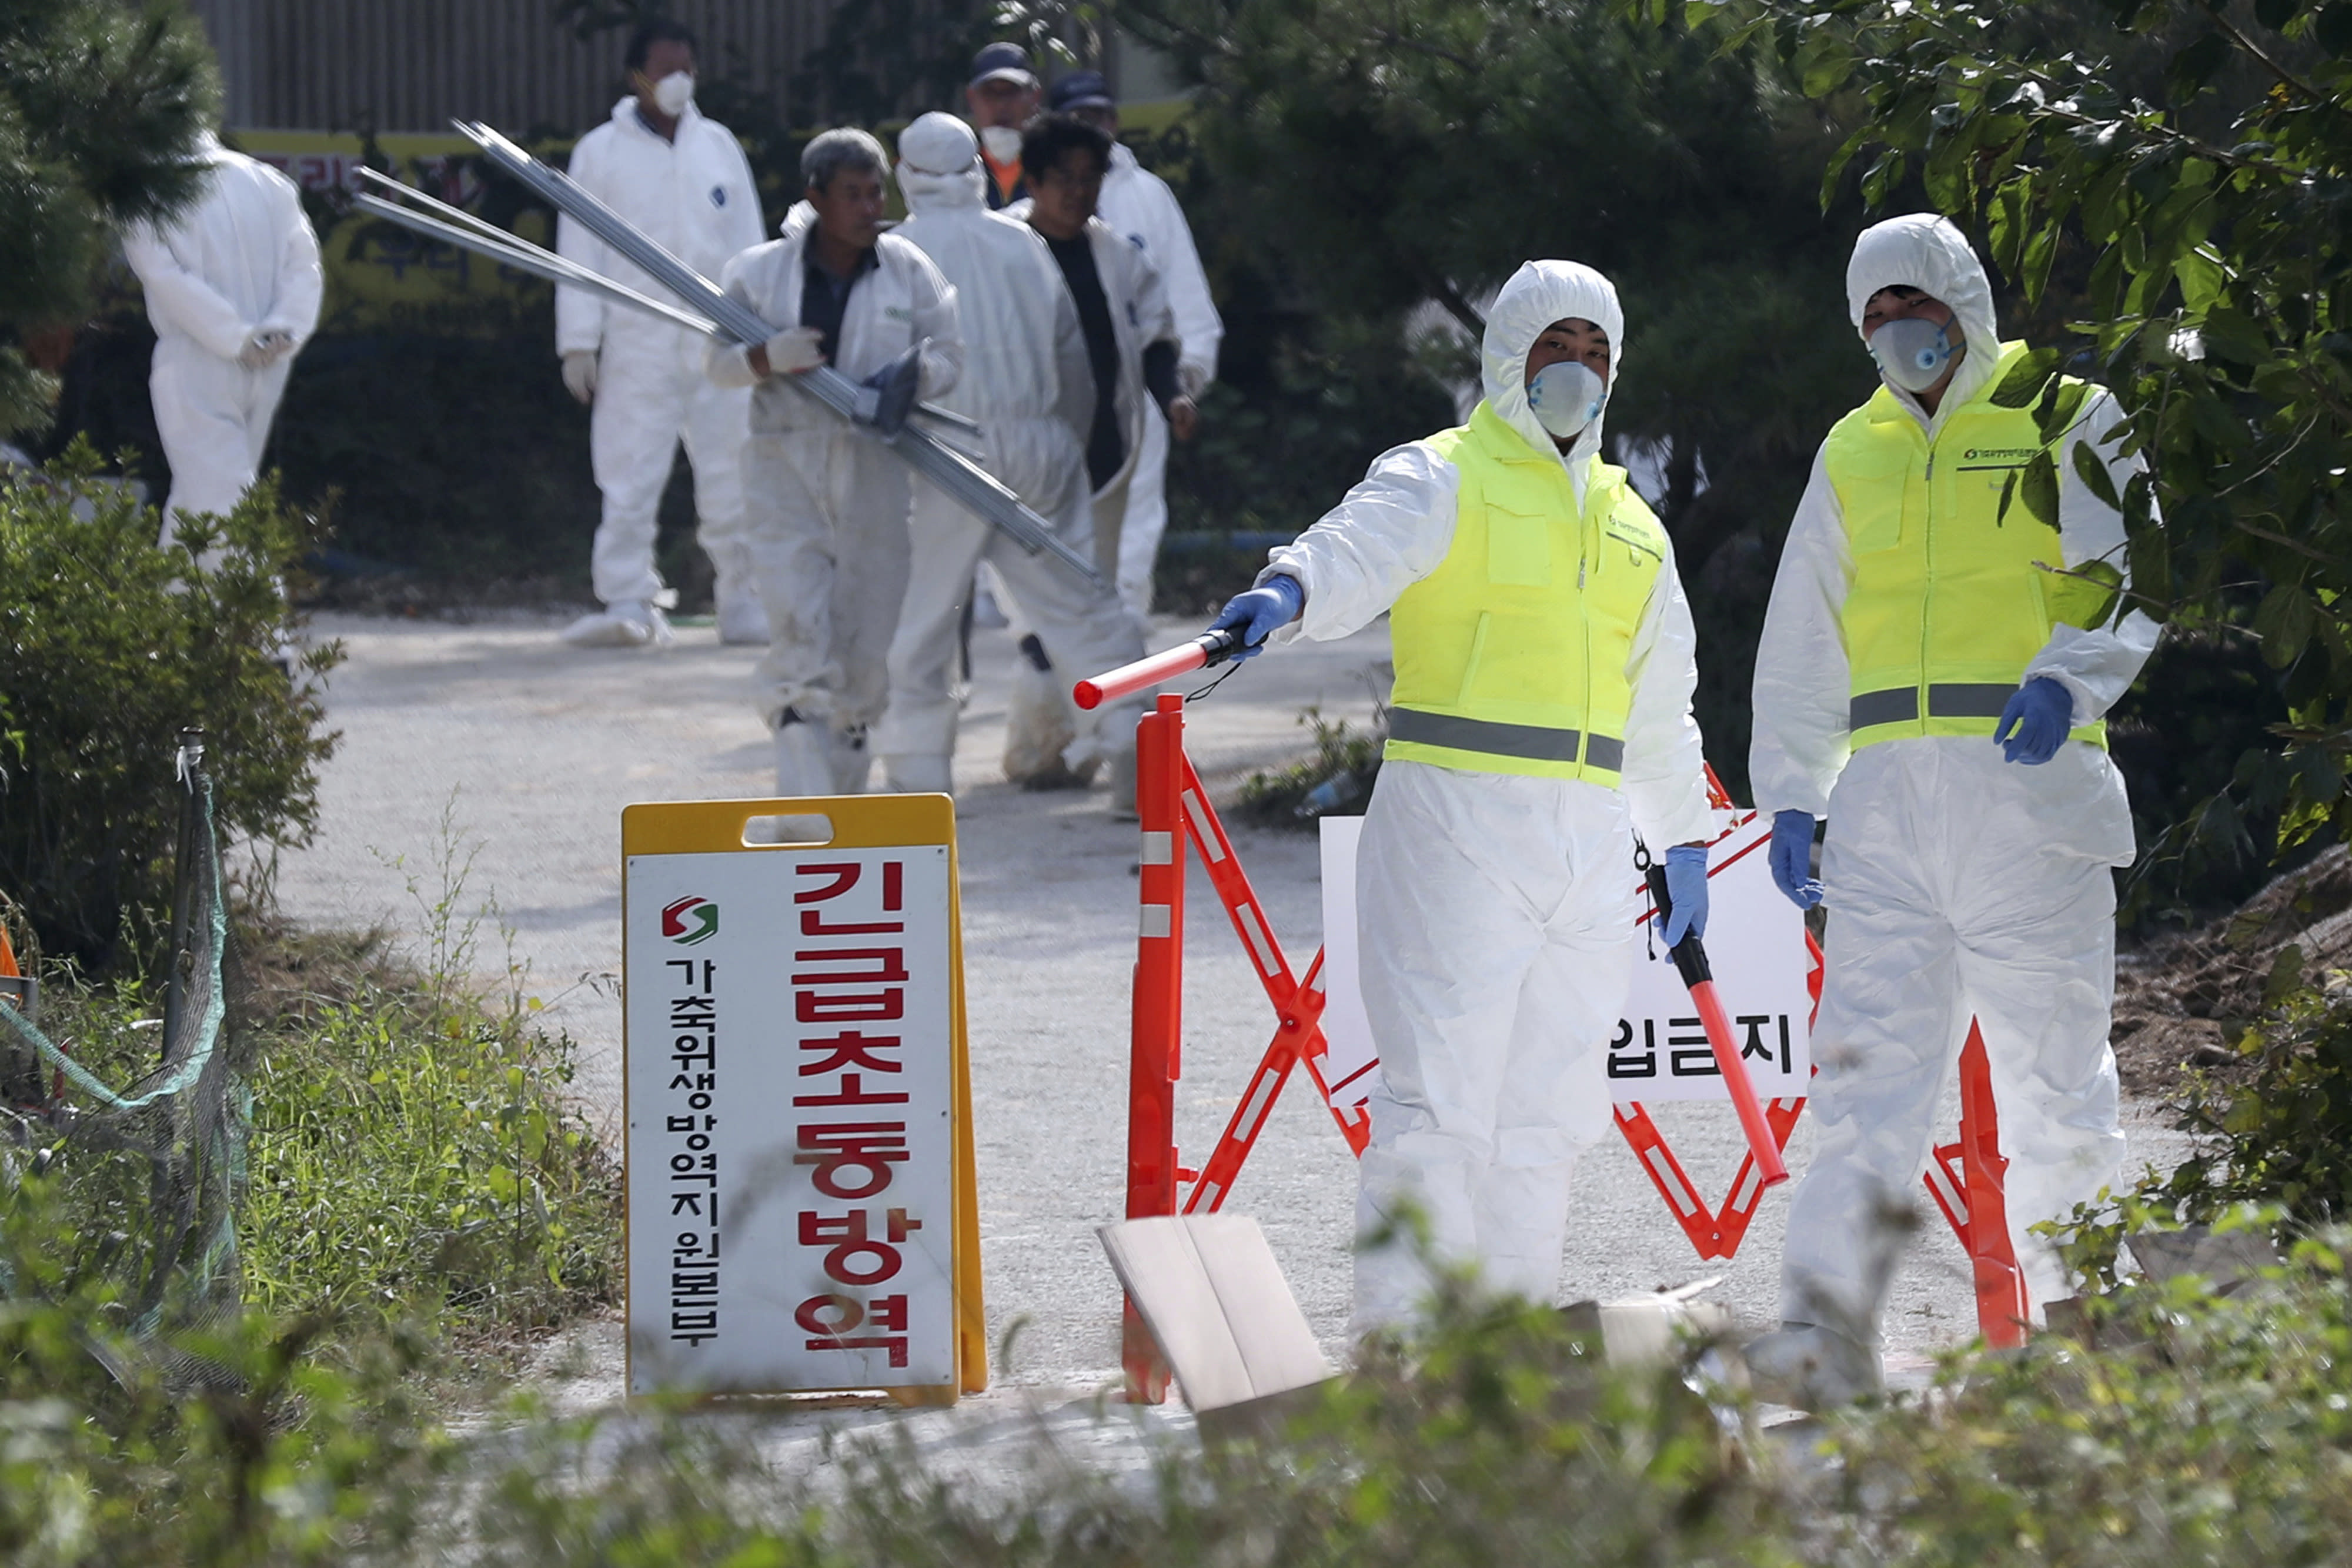 """Quarantine officials control access to a pig farm with confirmed African swine fever in Ganghwa, South Korea, Wednesday, Sept. 25, 2019. South Korean on Wednesday said it was intensifying efforts to clean farms around the country as it scrambles to contain the spread of the highly contagious African swine fever that has ravaged farms near its border with North Korea. The notice reads: """"Under quarantine."""" (Yun Tae-hyun/Yonhap via AP)"""